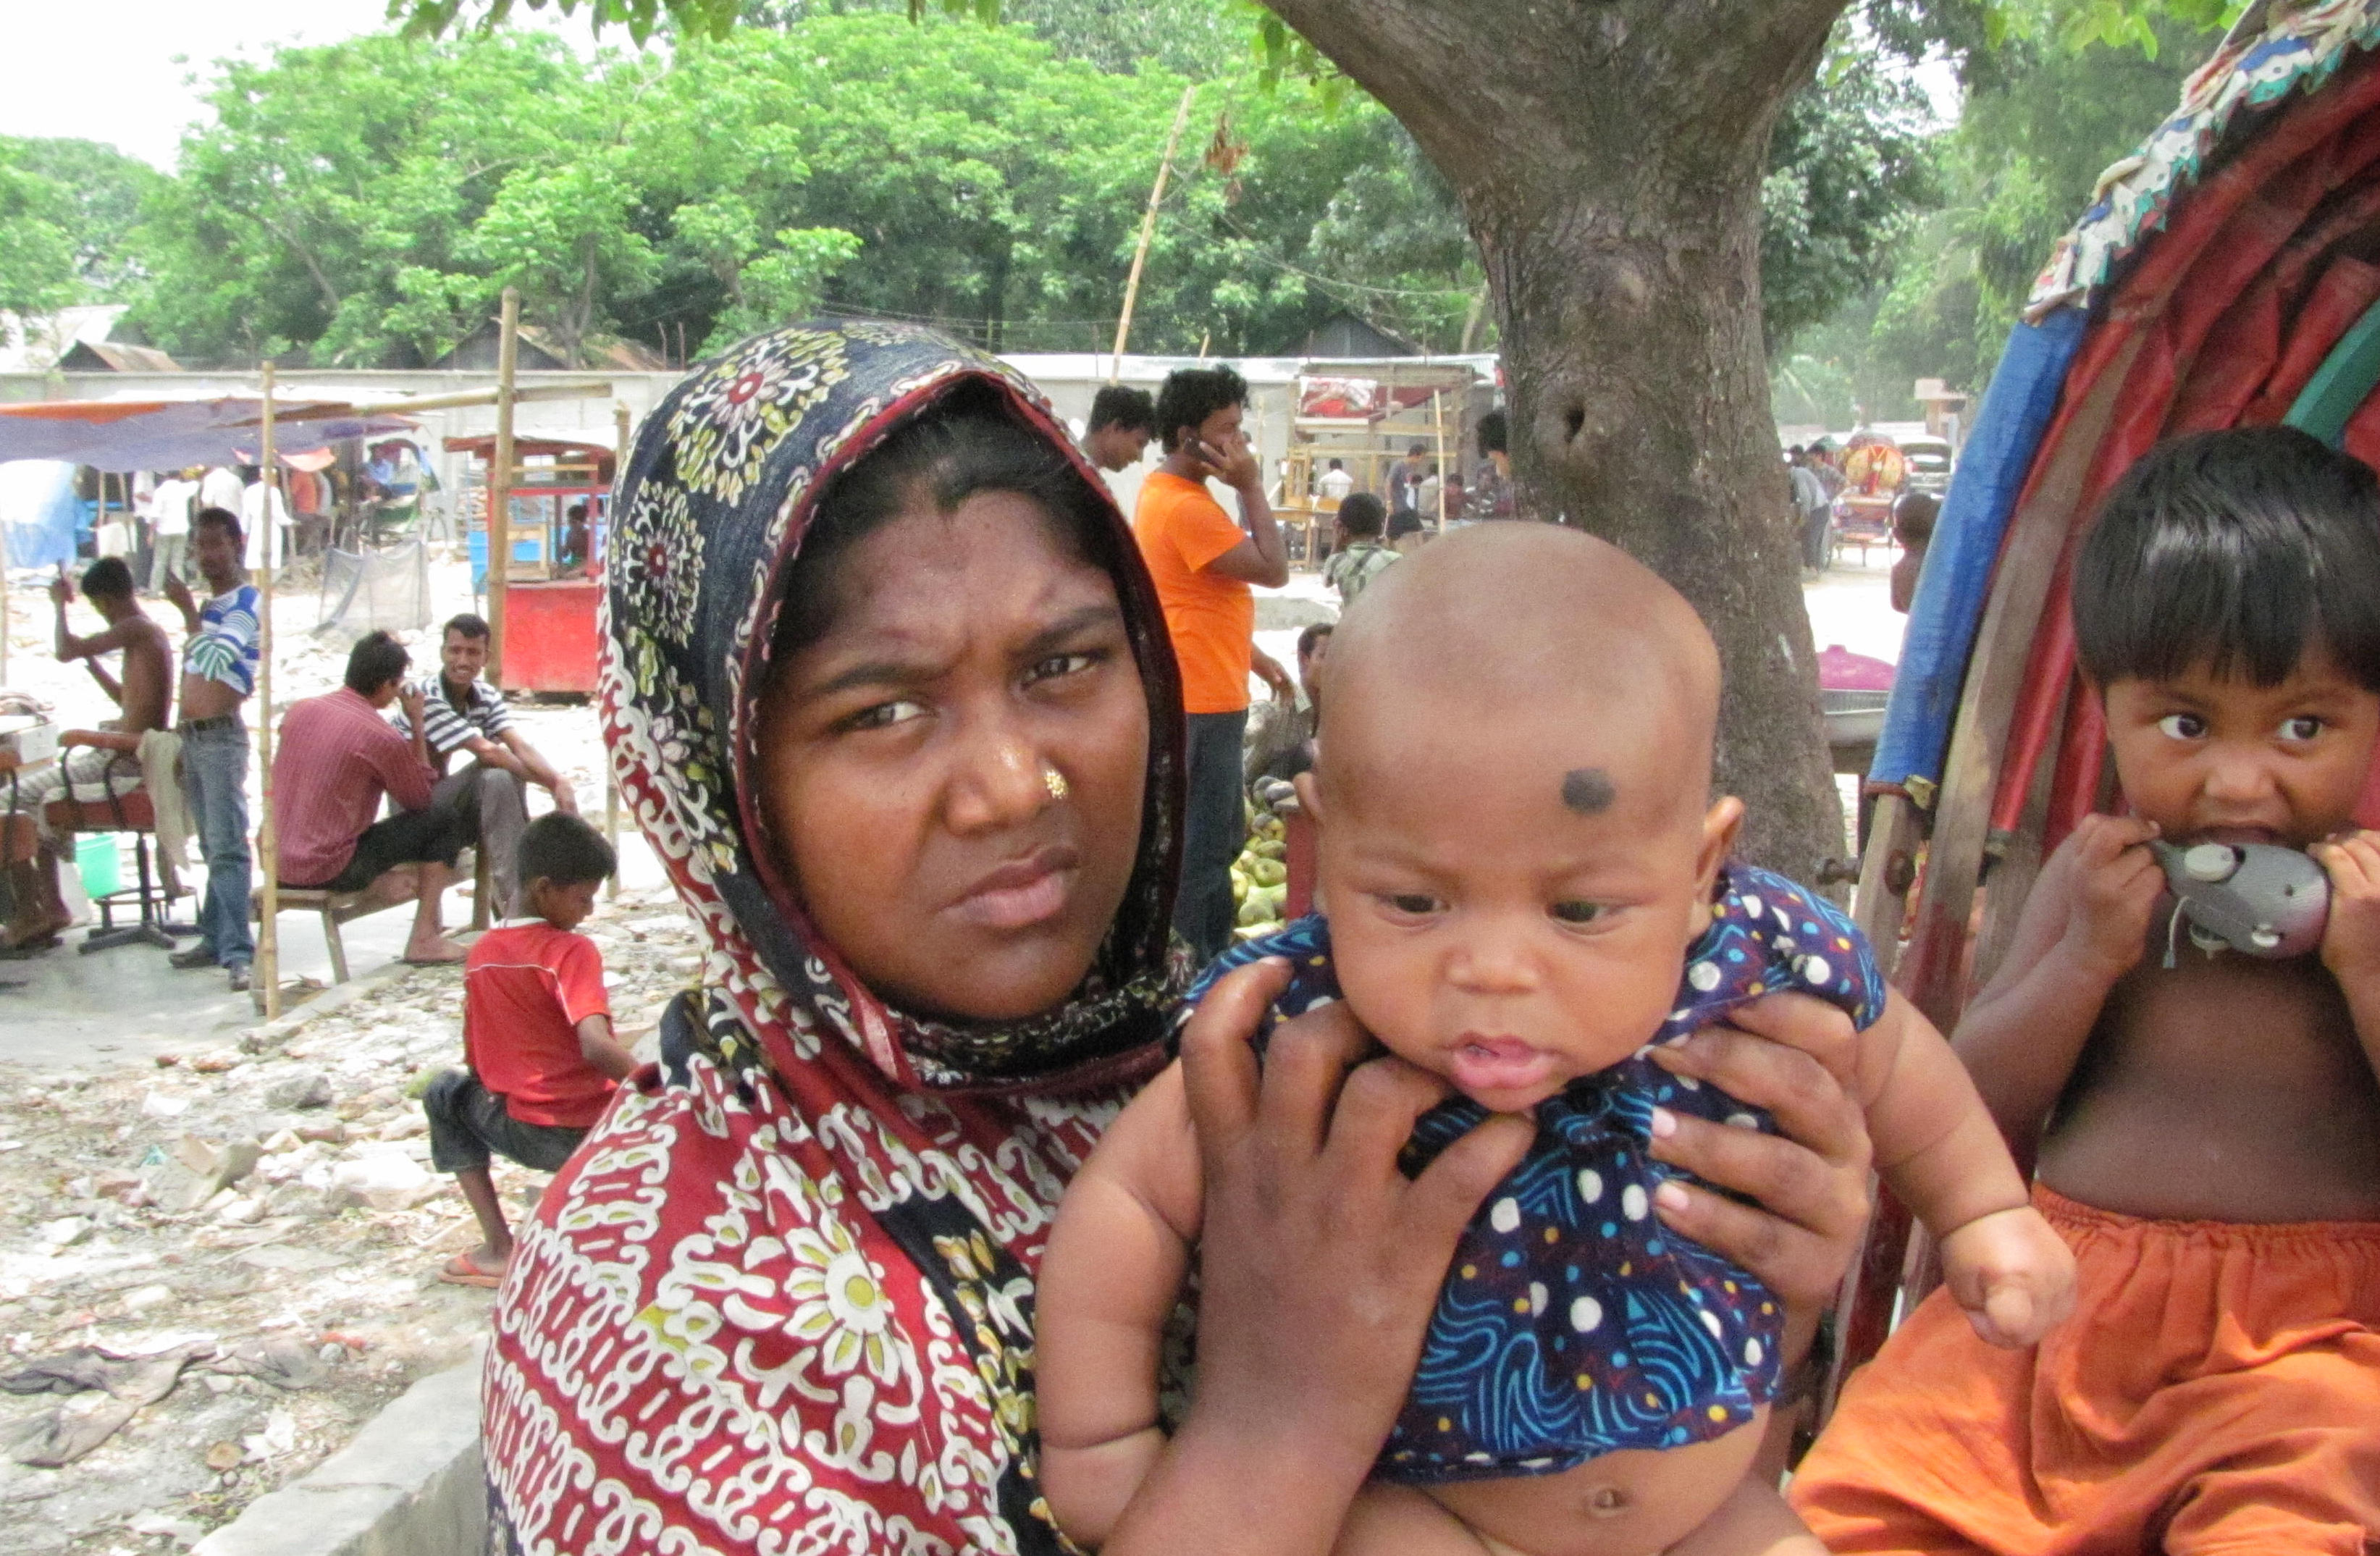 Shopna Begum, 35, in Dhaka's largest slum, Korail